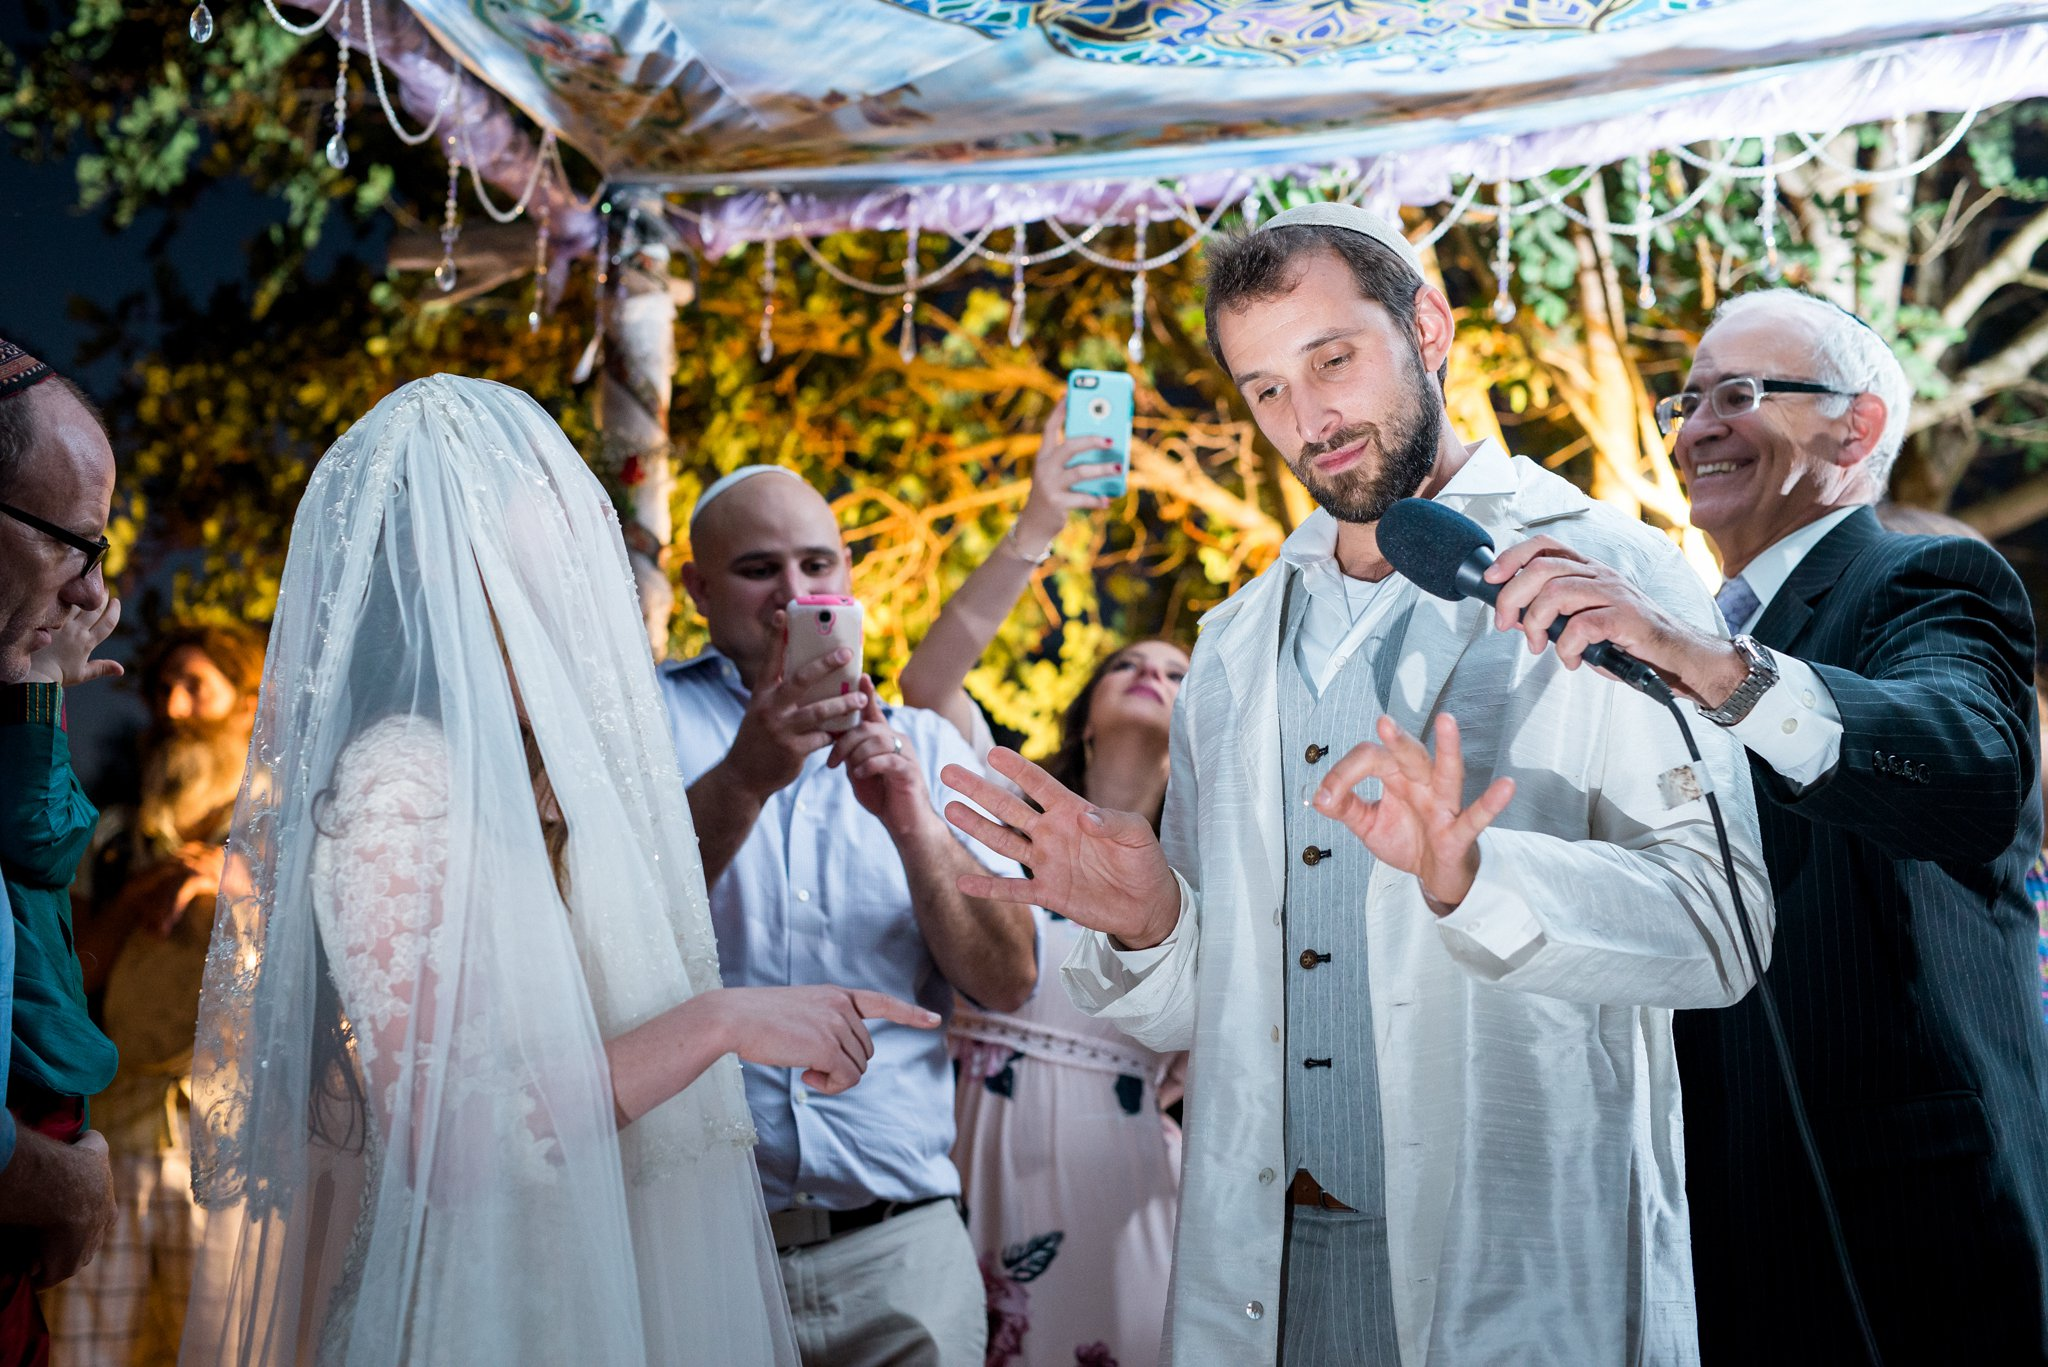 jewish-wedding-binyamina-israel-kate-giryes-photography-157_WEB.jpg